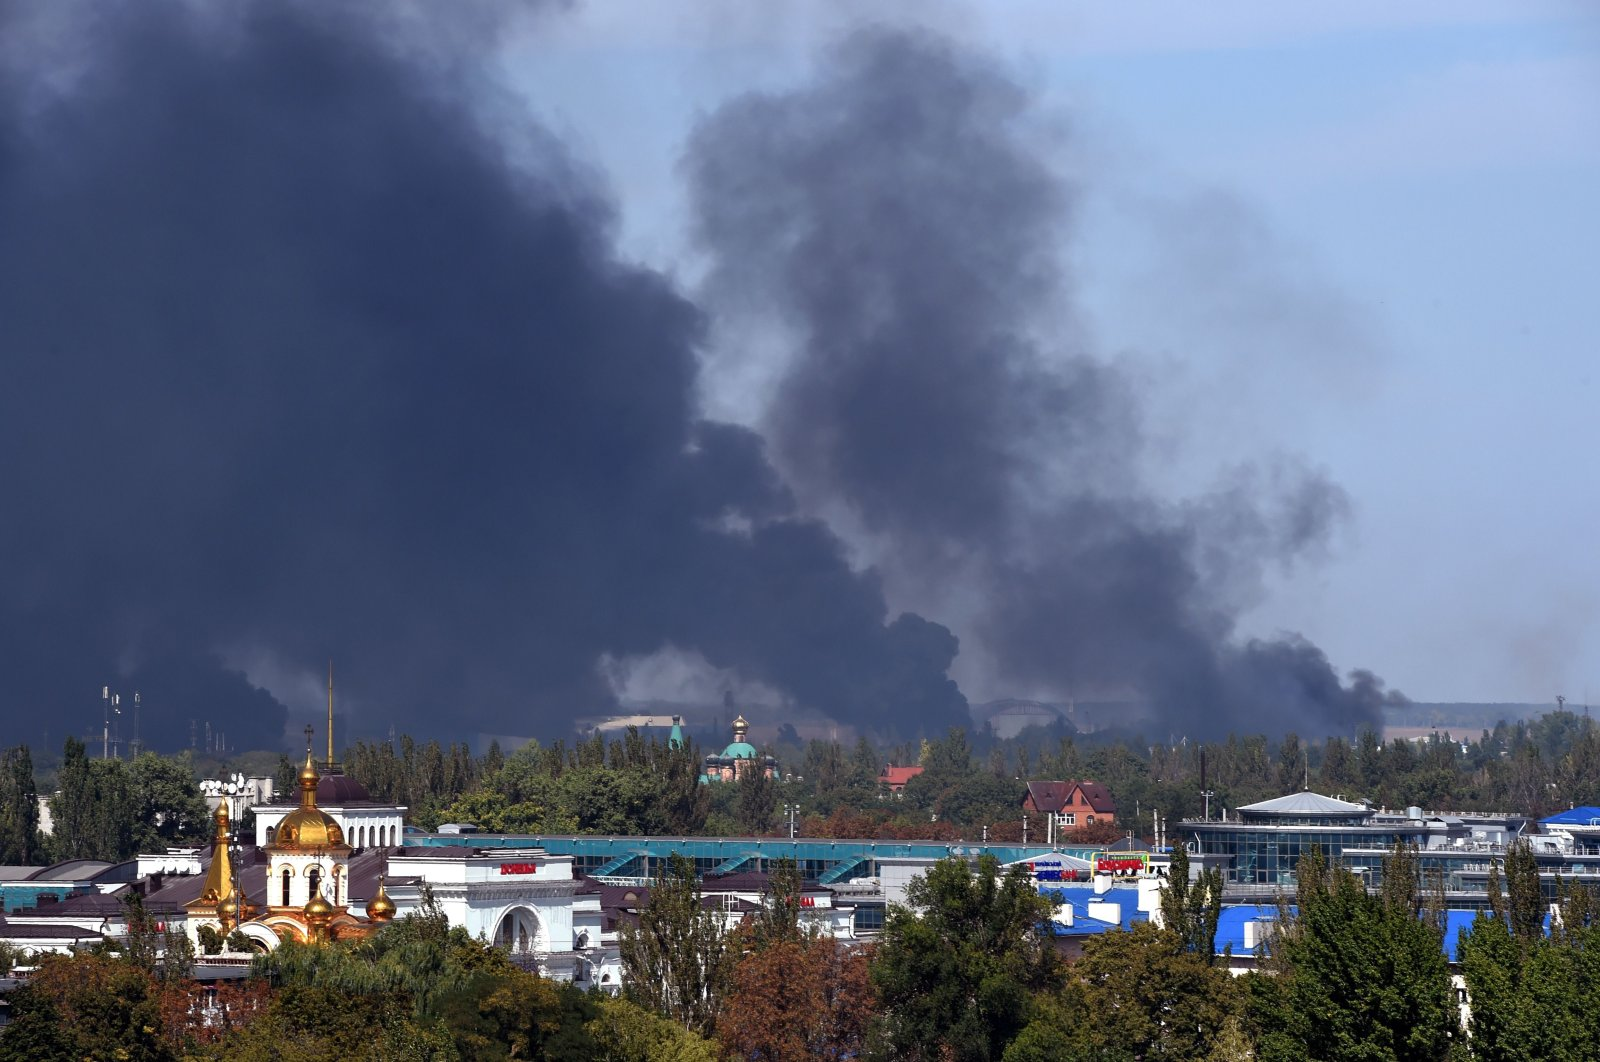 Black smoke ascends around the Donetsk International Airport as shelling continues between pro-Russian forces and the Ukrainian army, Donetsk, Ukraine, Sept. 14, 2014. (AFP Photo)